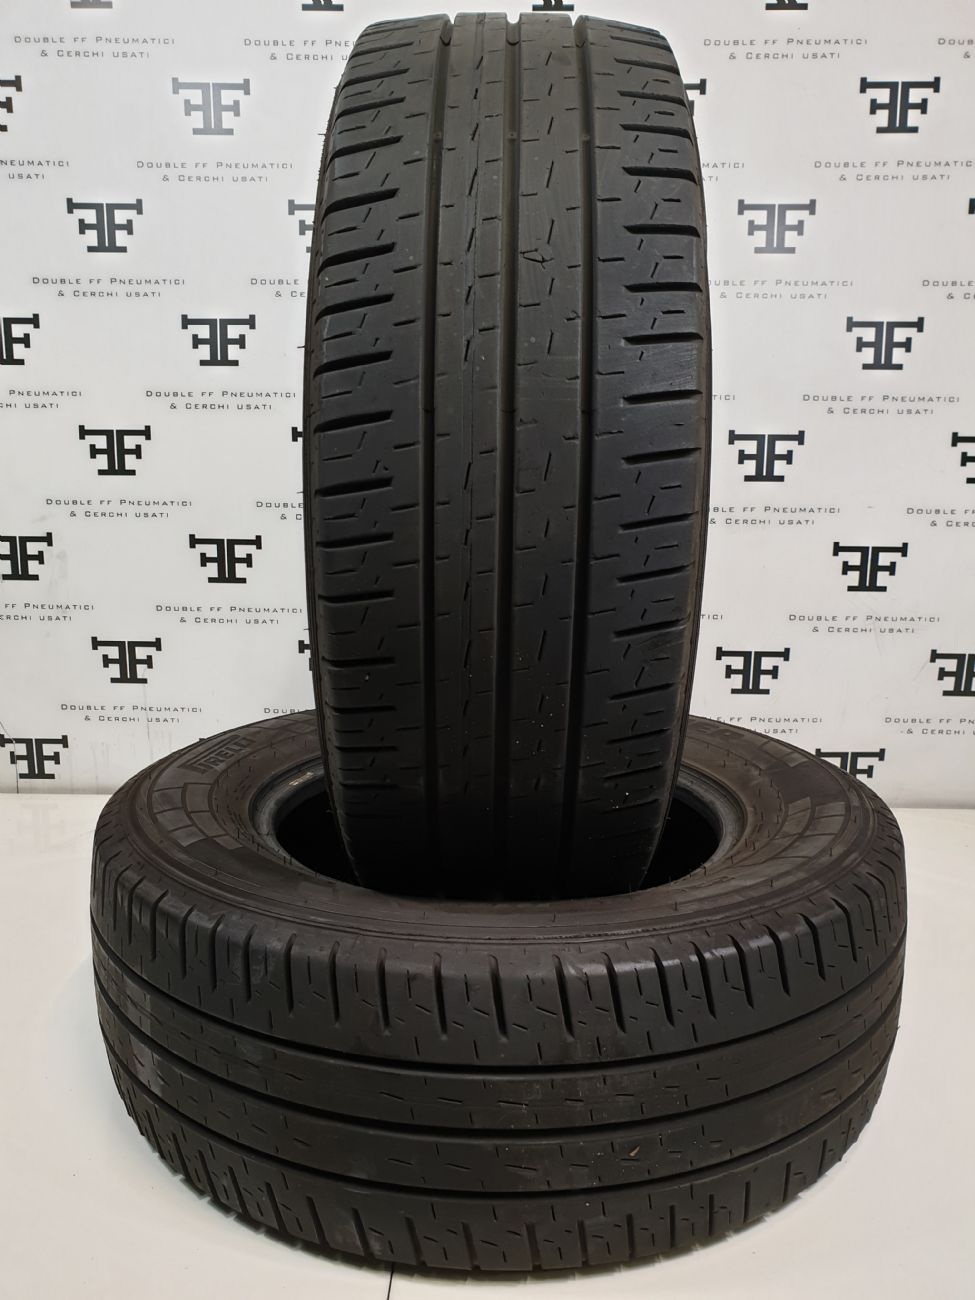 235/65 R16C 115/113 R PIRELLI CARRIER DEMONTE